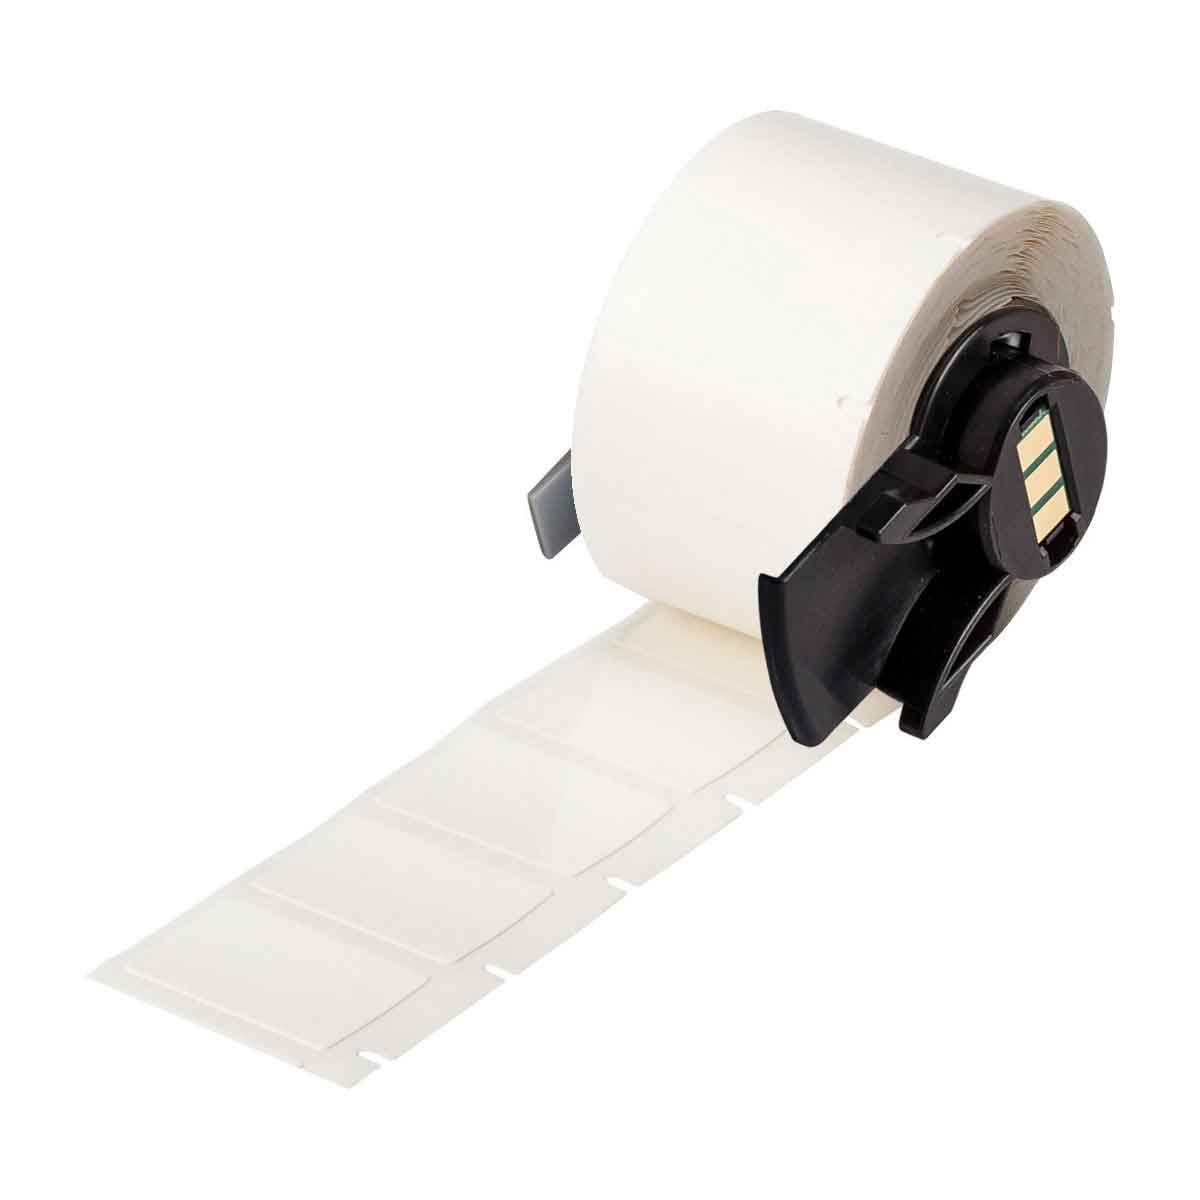 BRADY PTL-18-499 0.750 IN X 1.000 I250 Labels per Roll